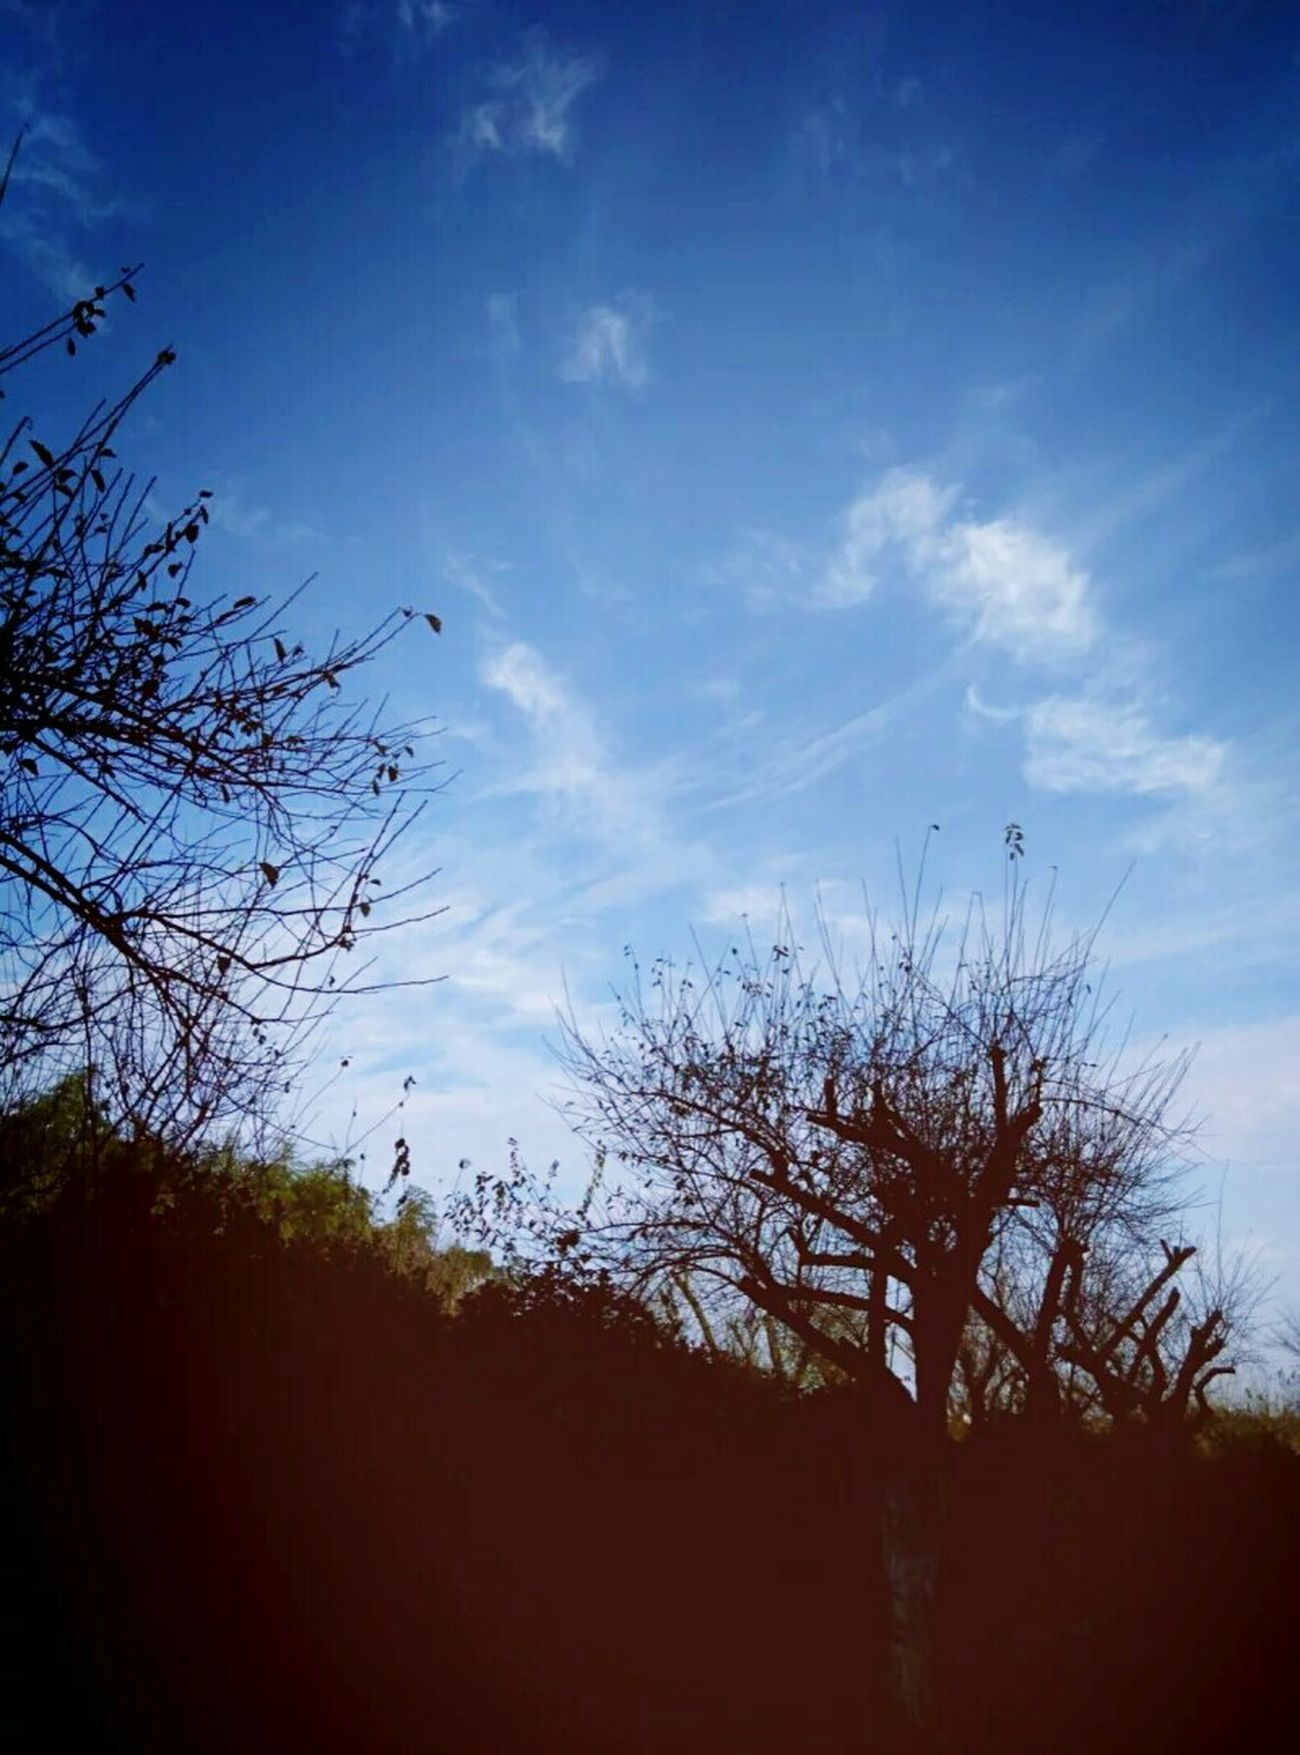 Trees Stay Sky Good Times Enjoy Life Relax Travel Old Town On The Road Relaxing China EyeEm China Free Time Taking Photos Village Life Country Nature Well  Life Good Wether Beautiful Day PhonePhotography IPhoneography